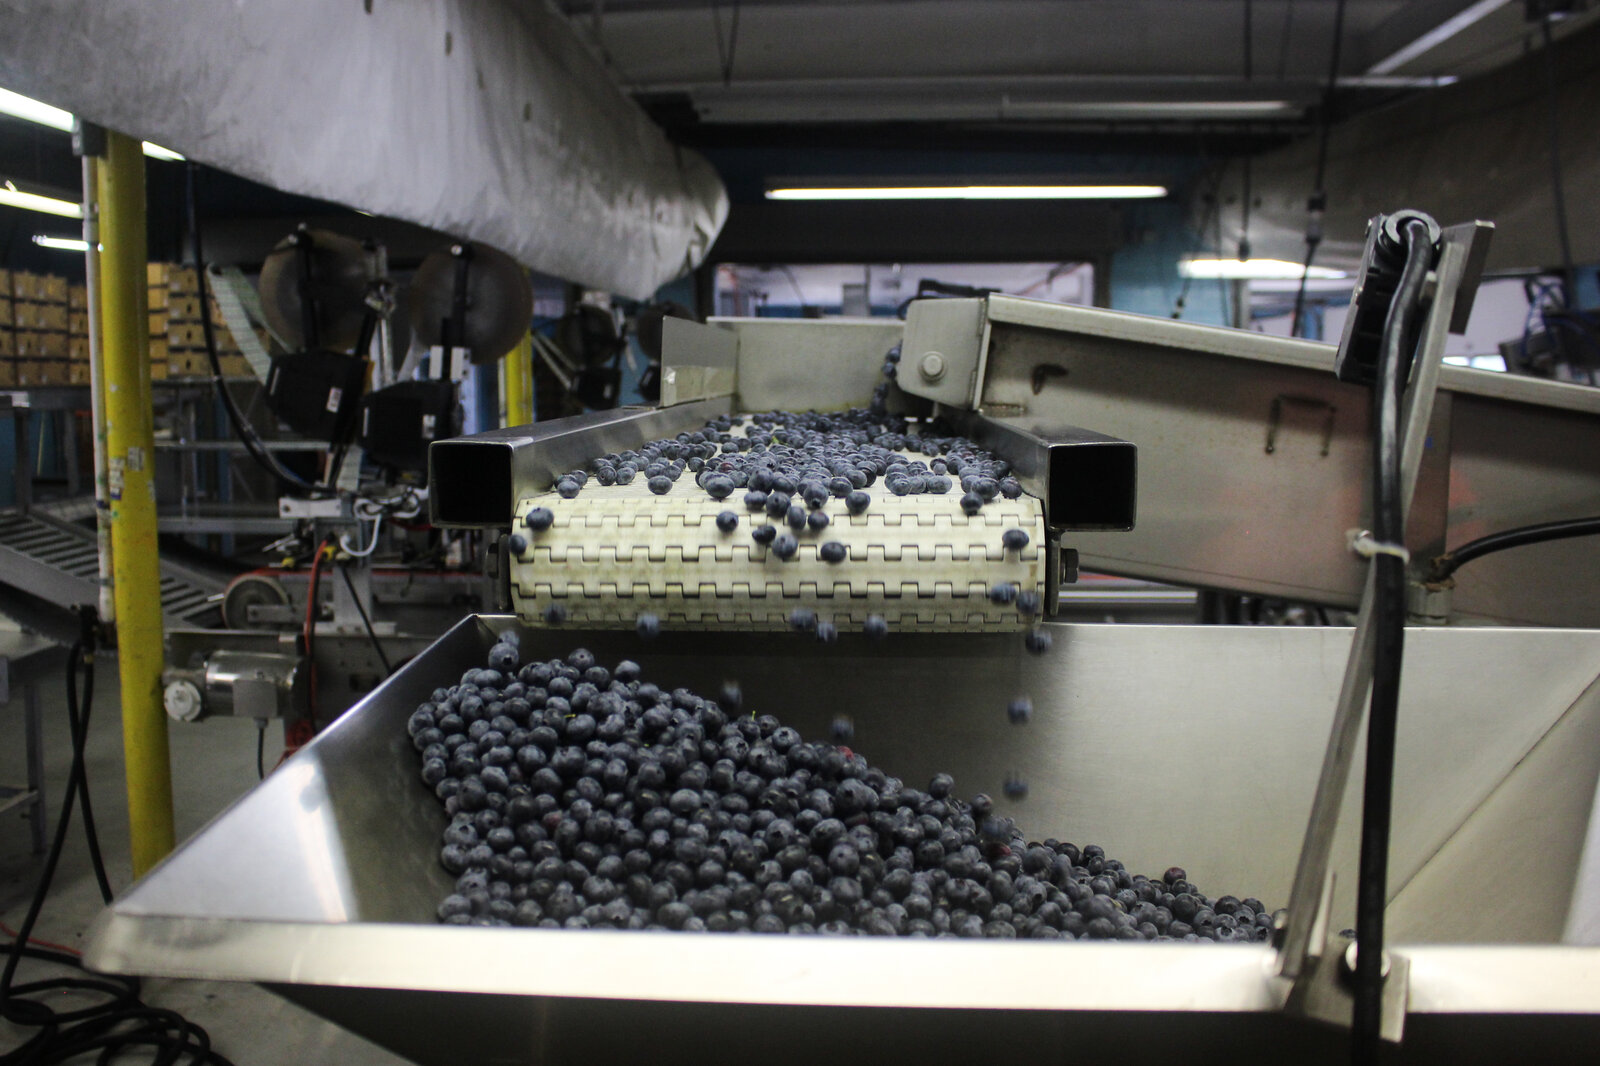 Part of the fresh blueberry packing line at the Atlantic Blueberry Co.